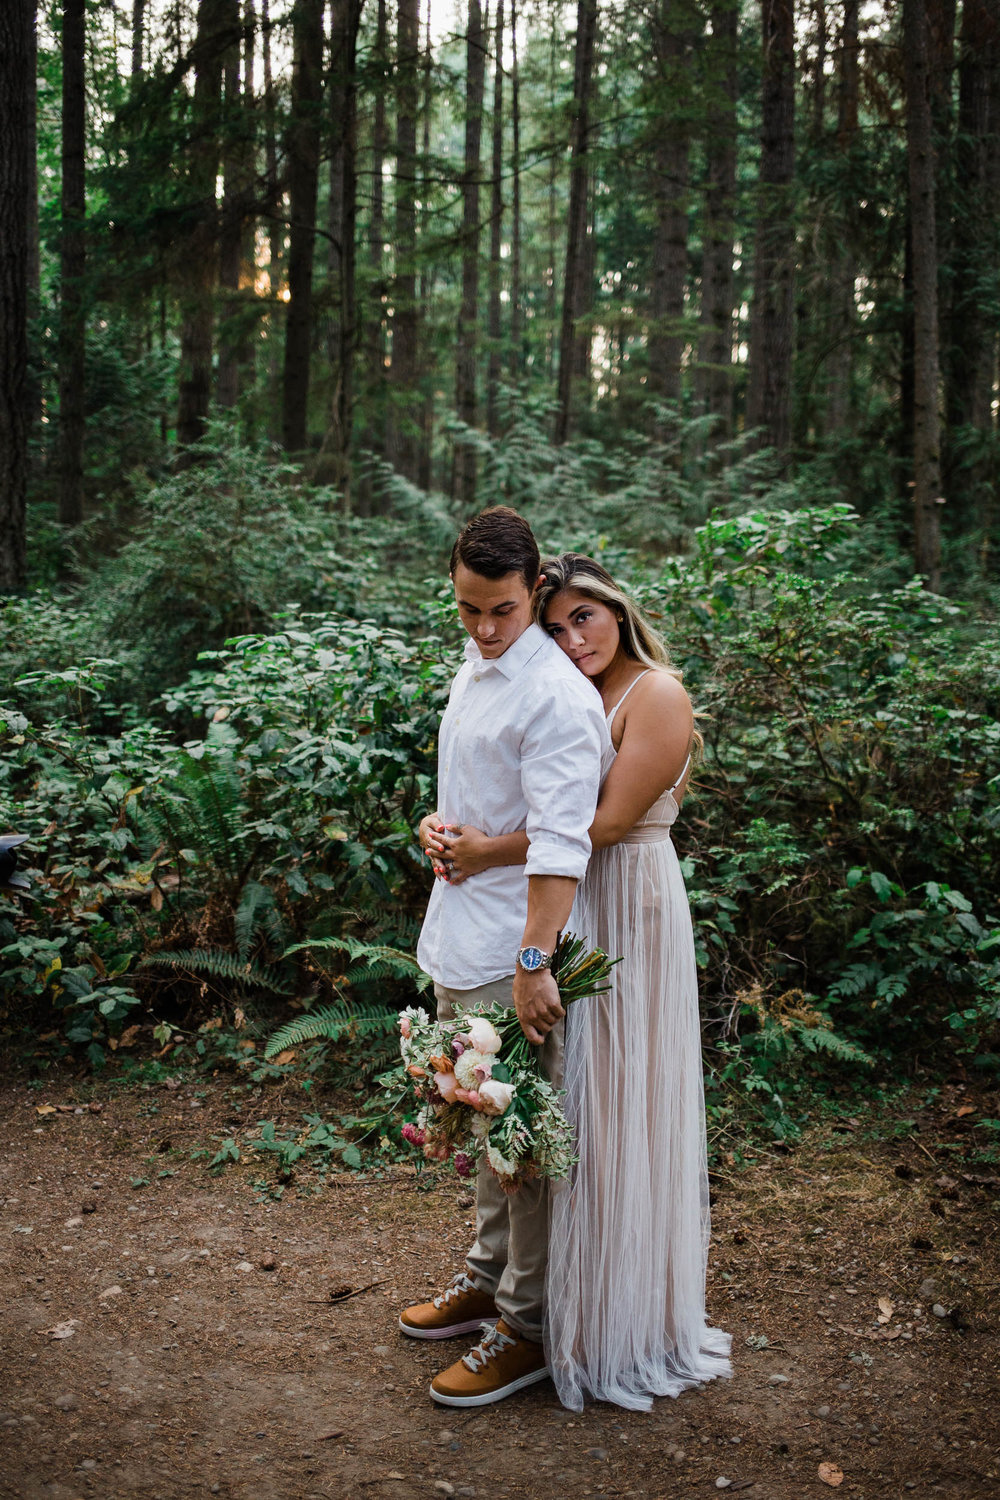 Bainbridge-Island-Elopement-KyleLovesTori-7.jpg